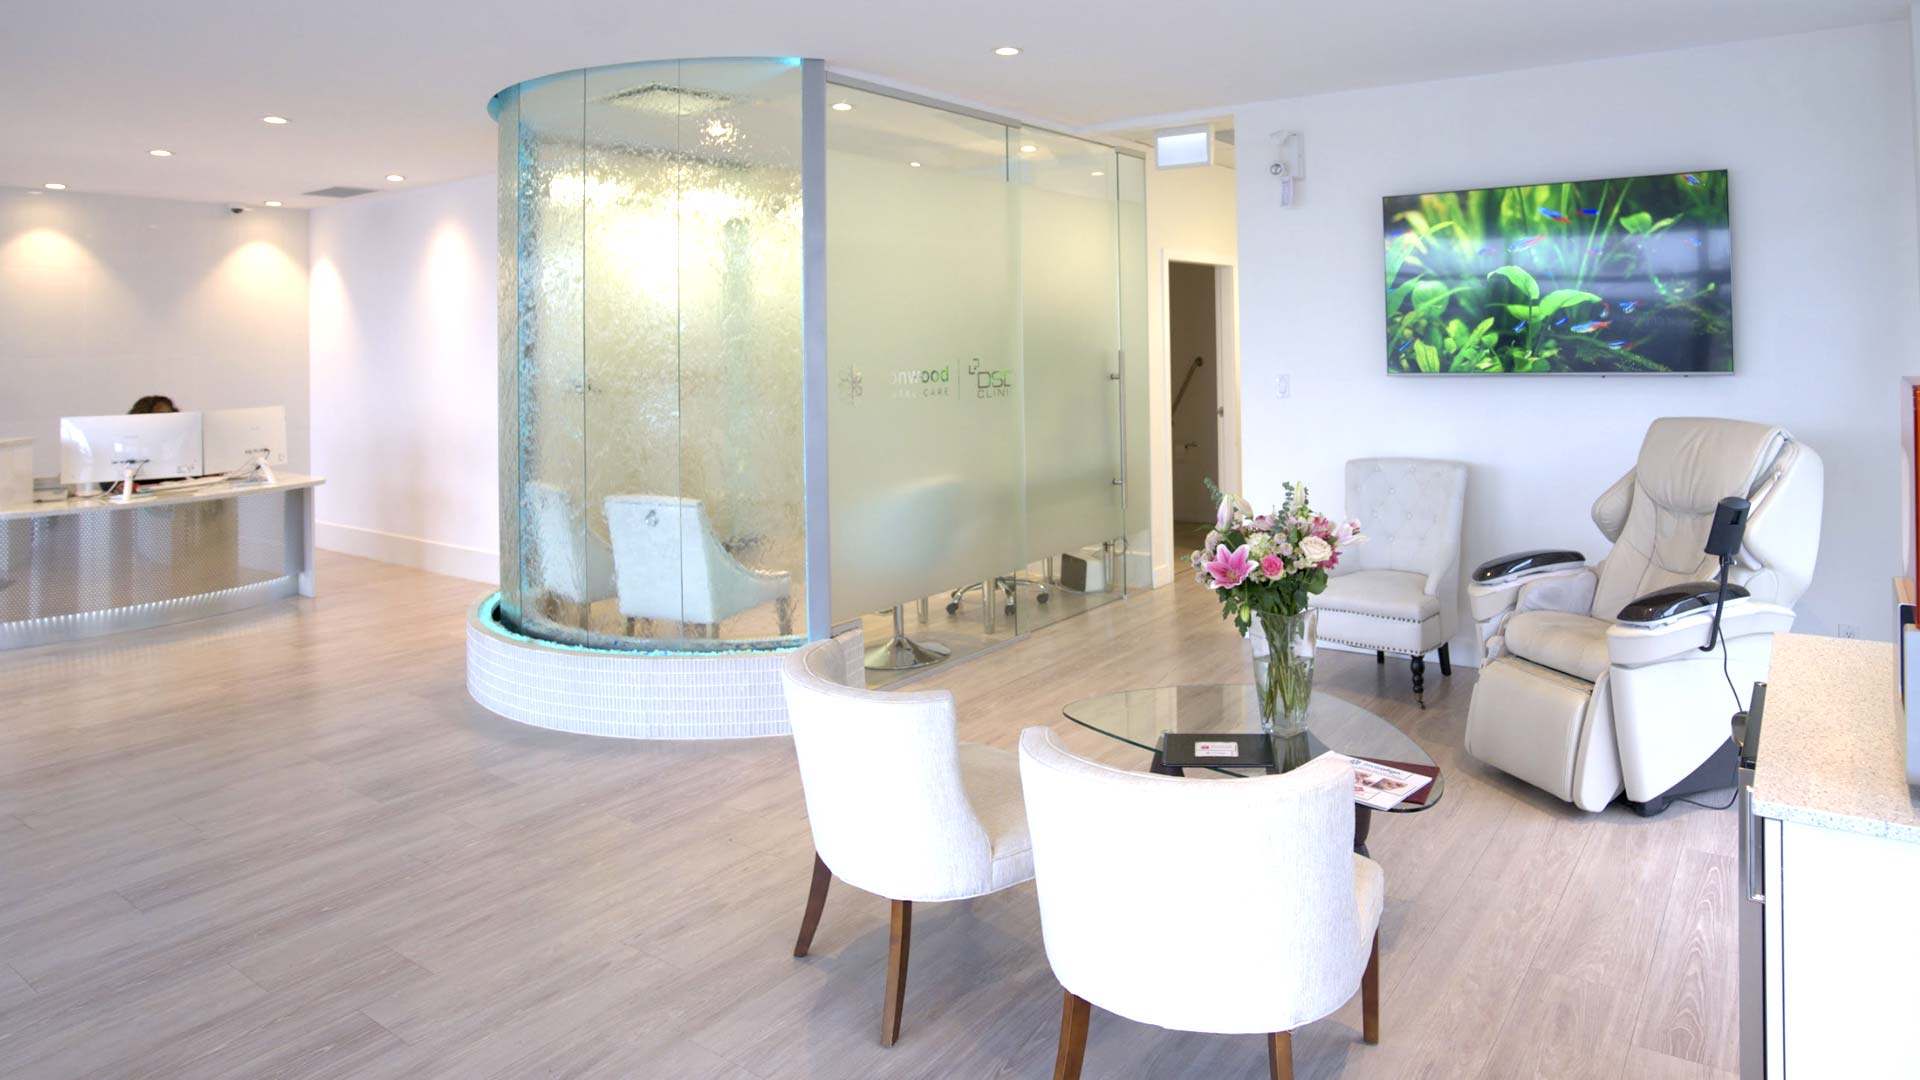 The reception and waiting area at Ironwood Dental Care with comfortable chairs and waterfall feature.